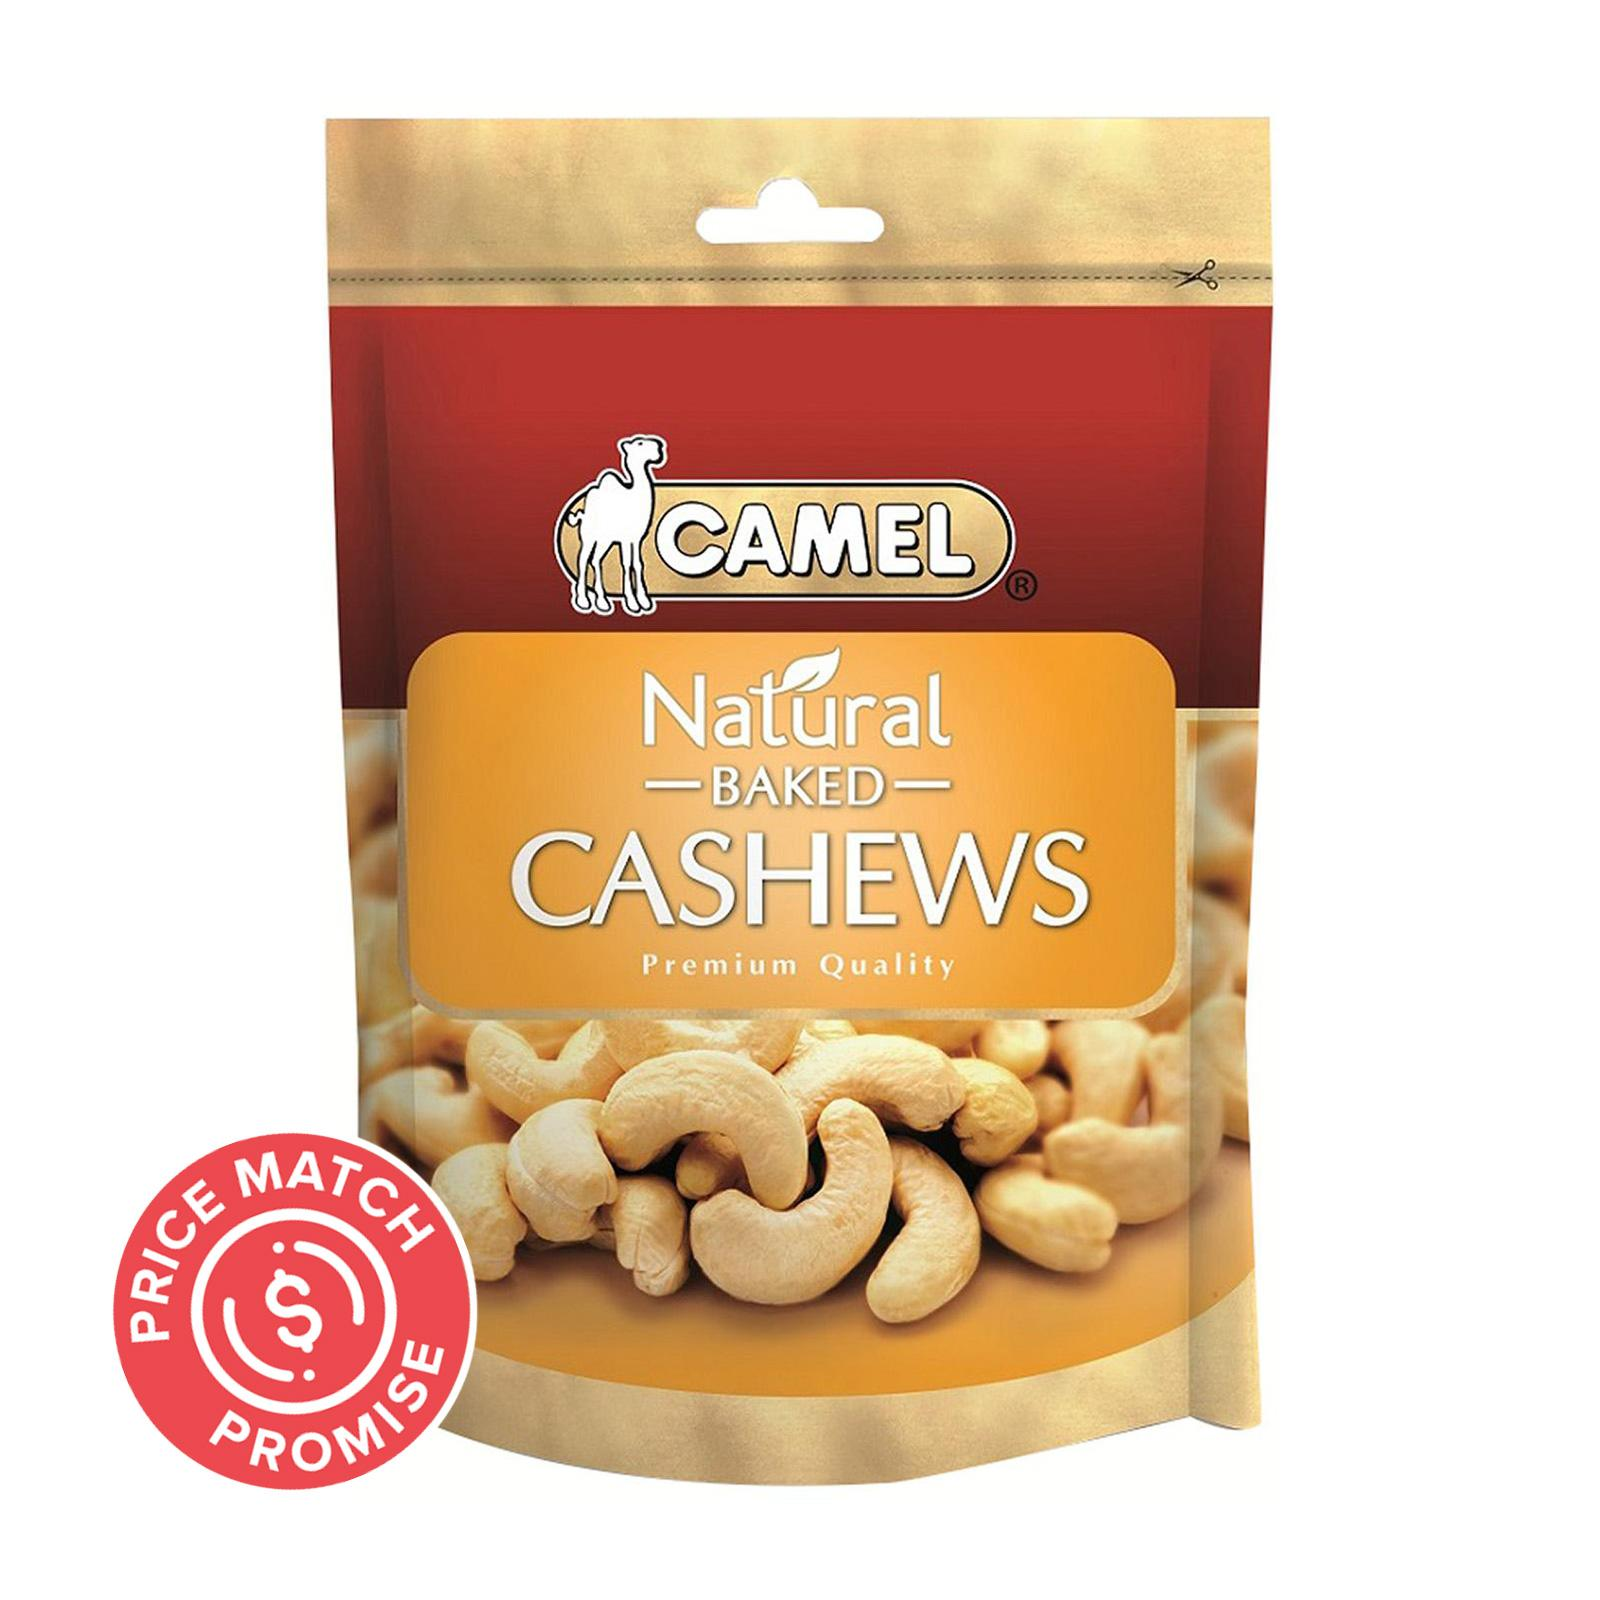 CAMEL Natural Baked Cashew Nuts 400g